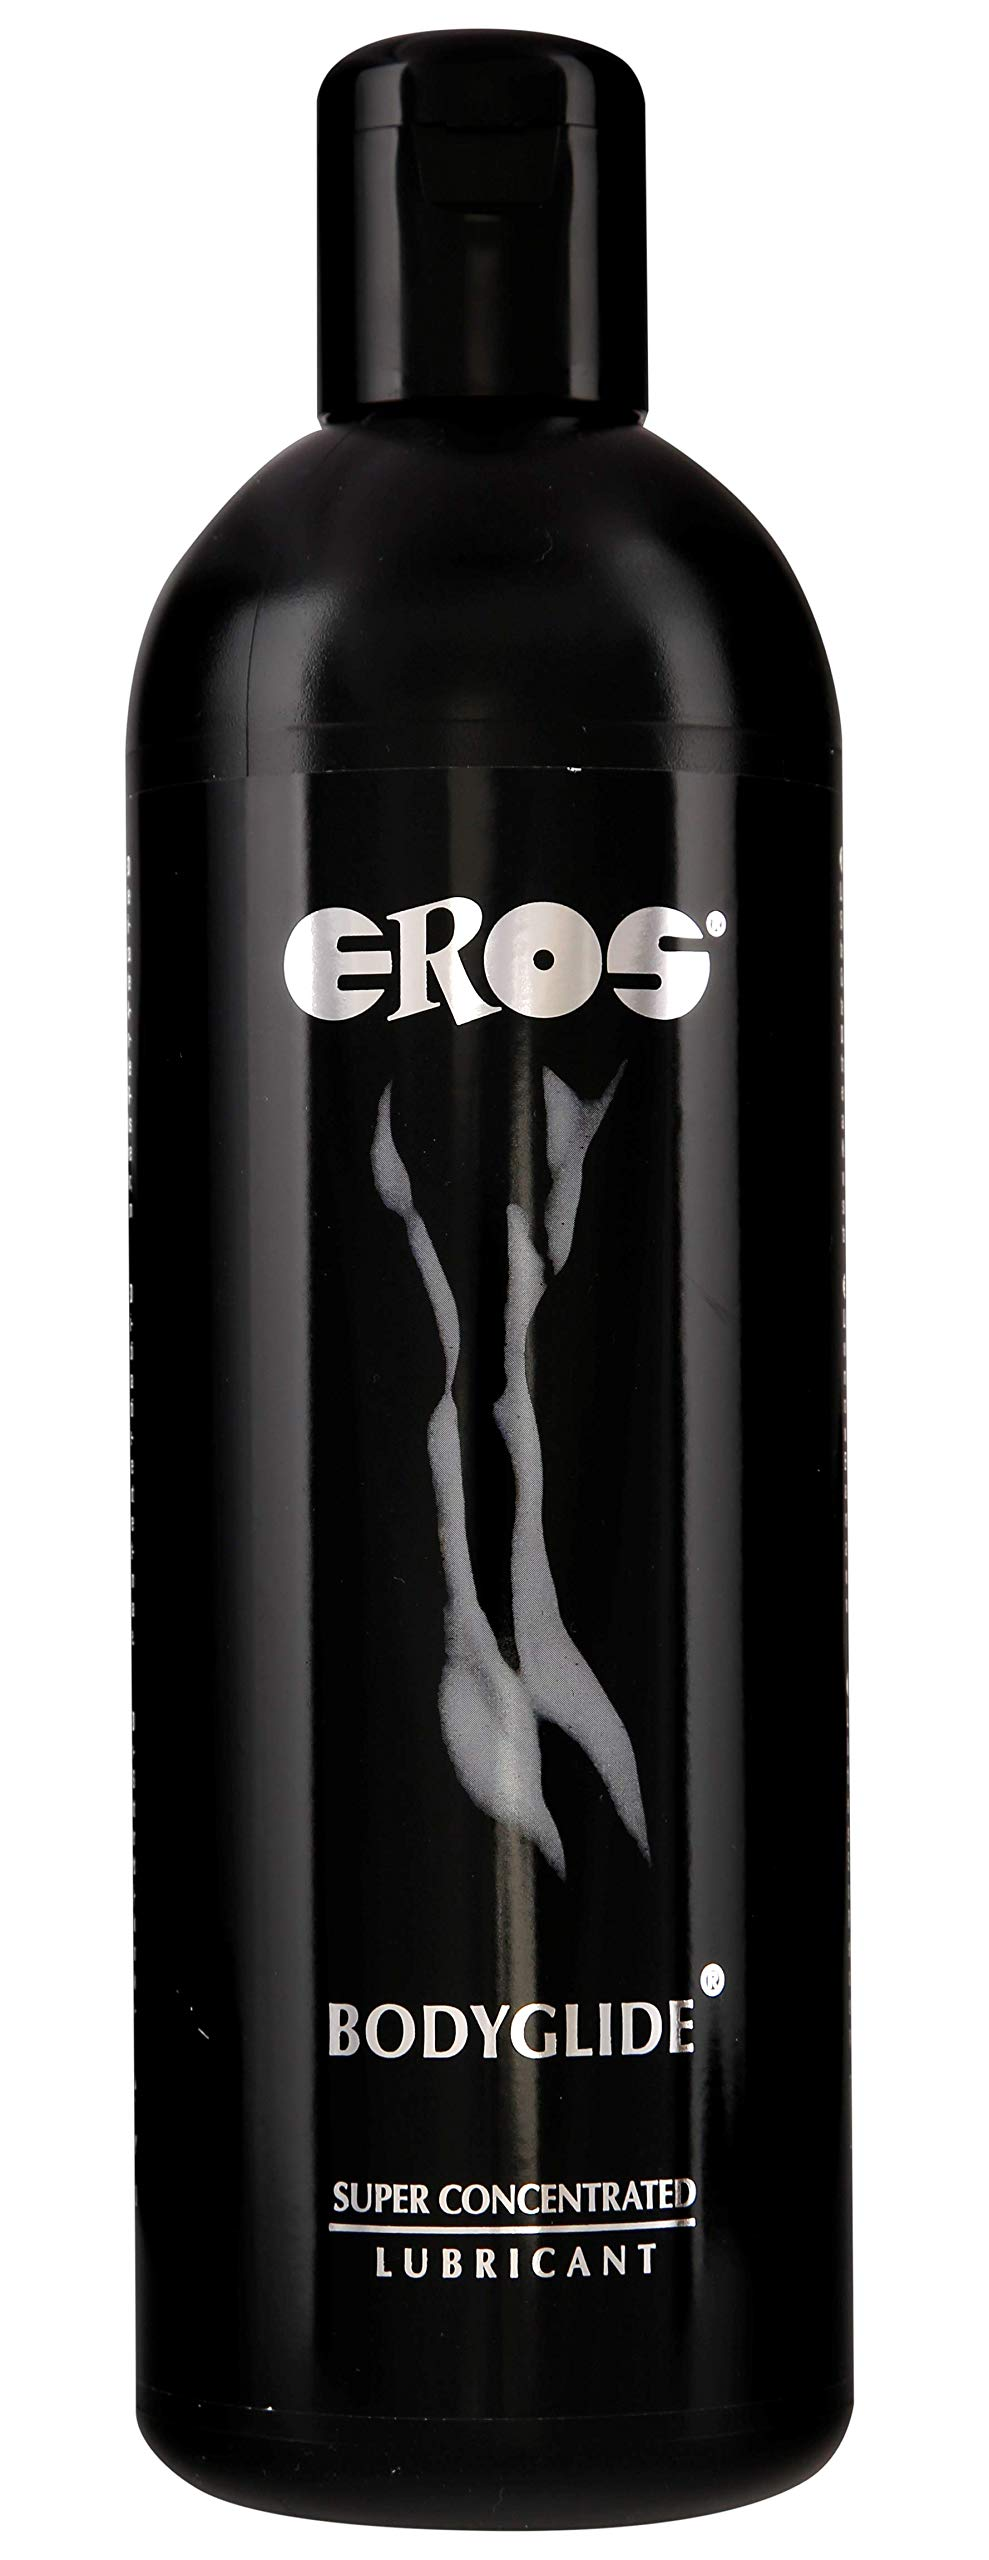 Megasol EROS Bodyglide Super Concentrated Body Gel - Silicon Based Personal Lubricant. Latex Condom Safe, Ultra Long-Lasting Sex Lube Without Parabens or Glycerin ~ 1000 mL by EROS